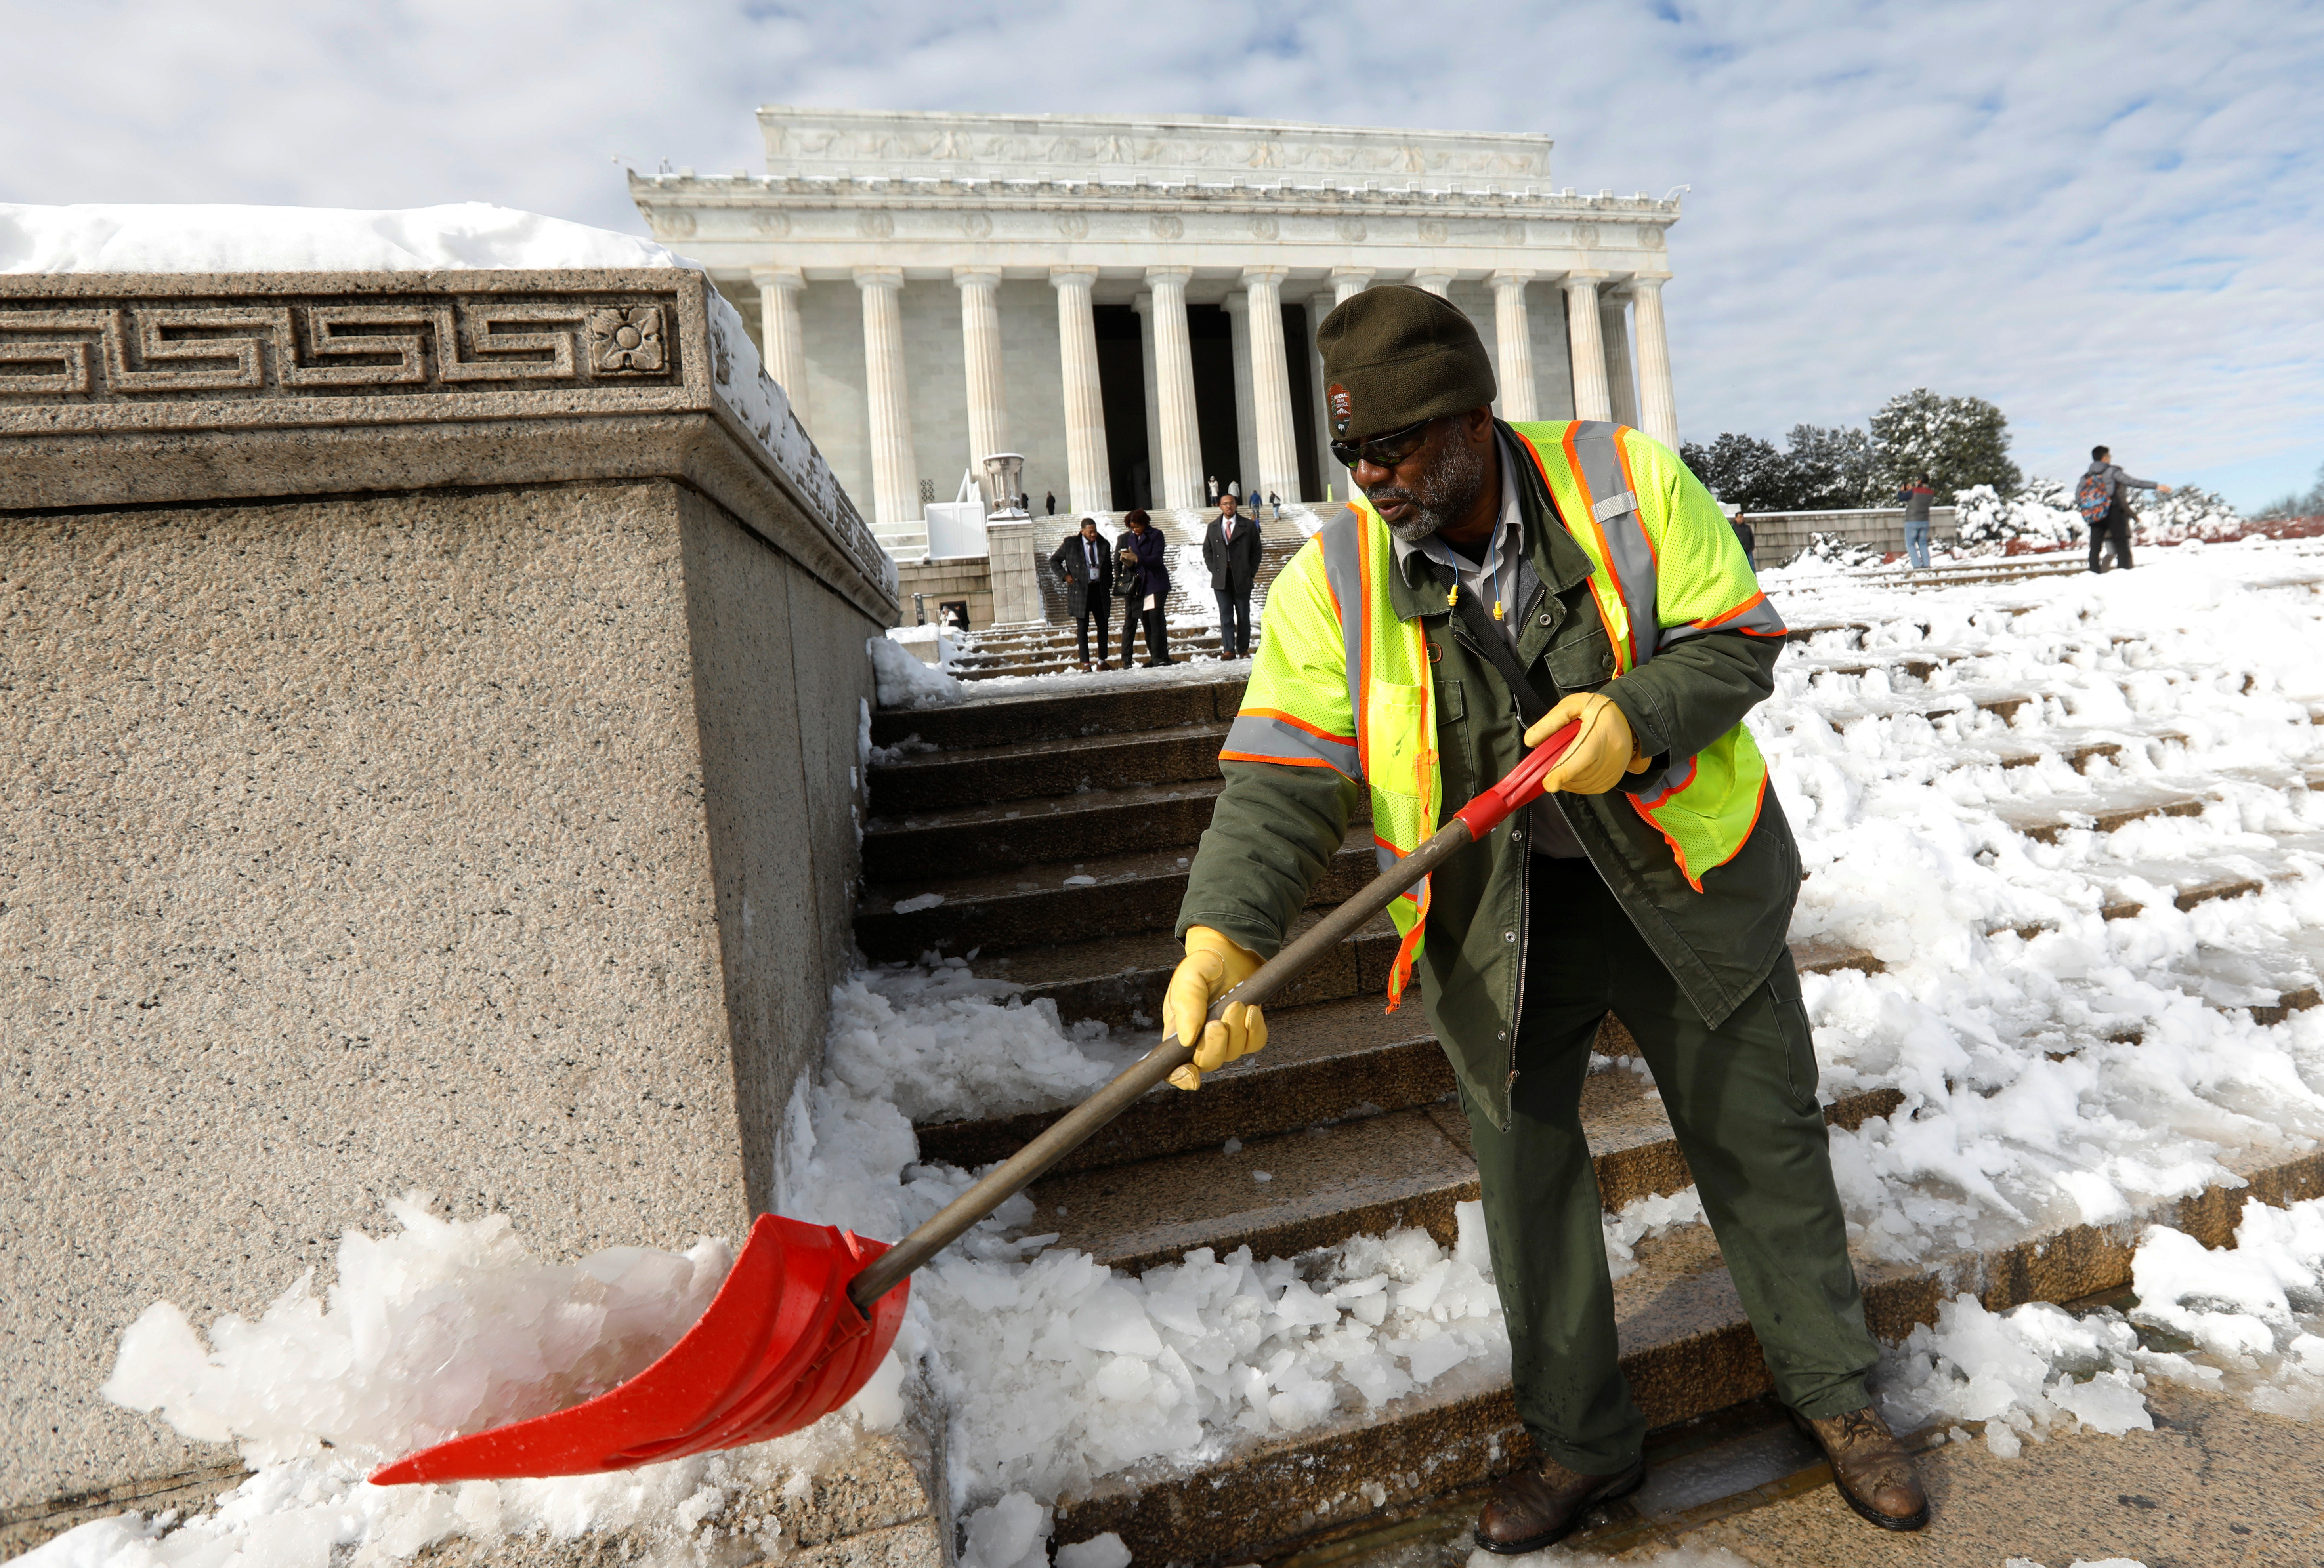 Furloughed National Park Service employee cleans the steps of the Lincoln Memorial on day 24 of the government shutdown, in Washington